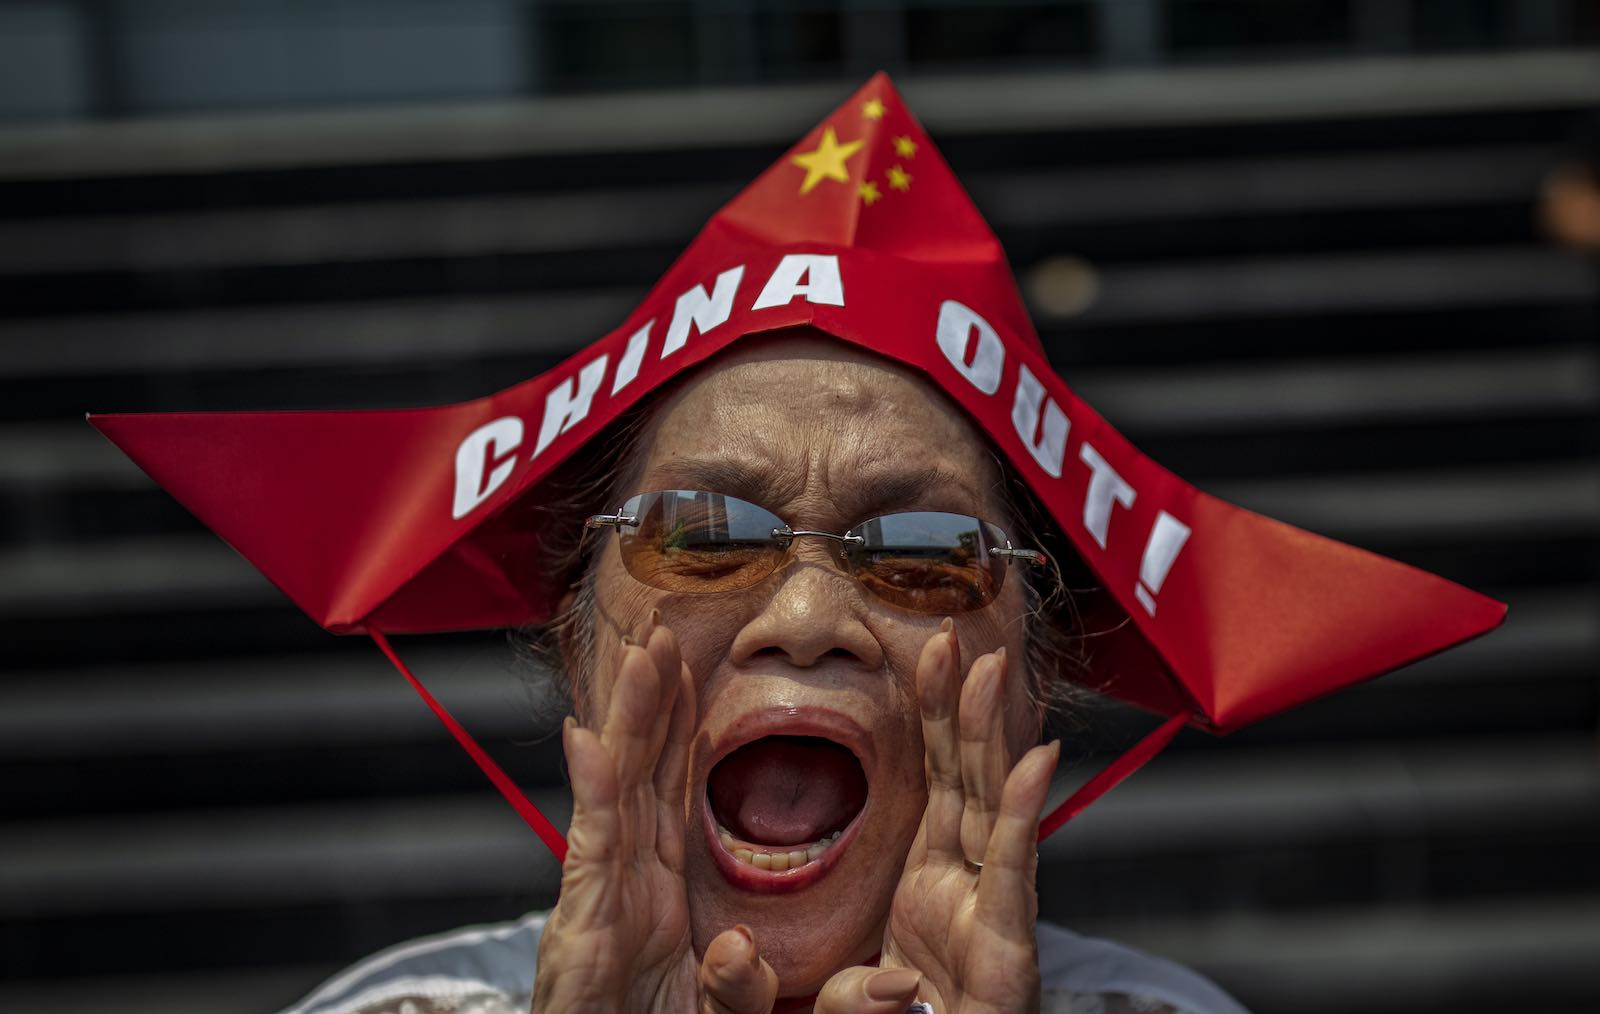 A woman shouts during a protest outside the Chinese Embassy in Manila, Philippines, 12 July 2019 (Photo: Ezra Acayan/Getty Images)